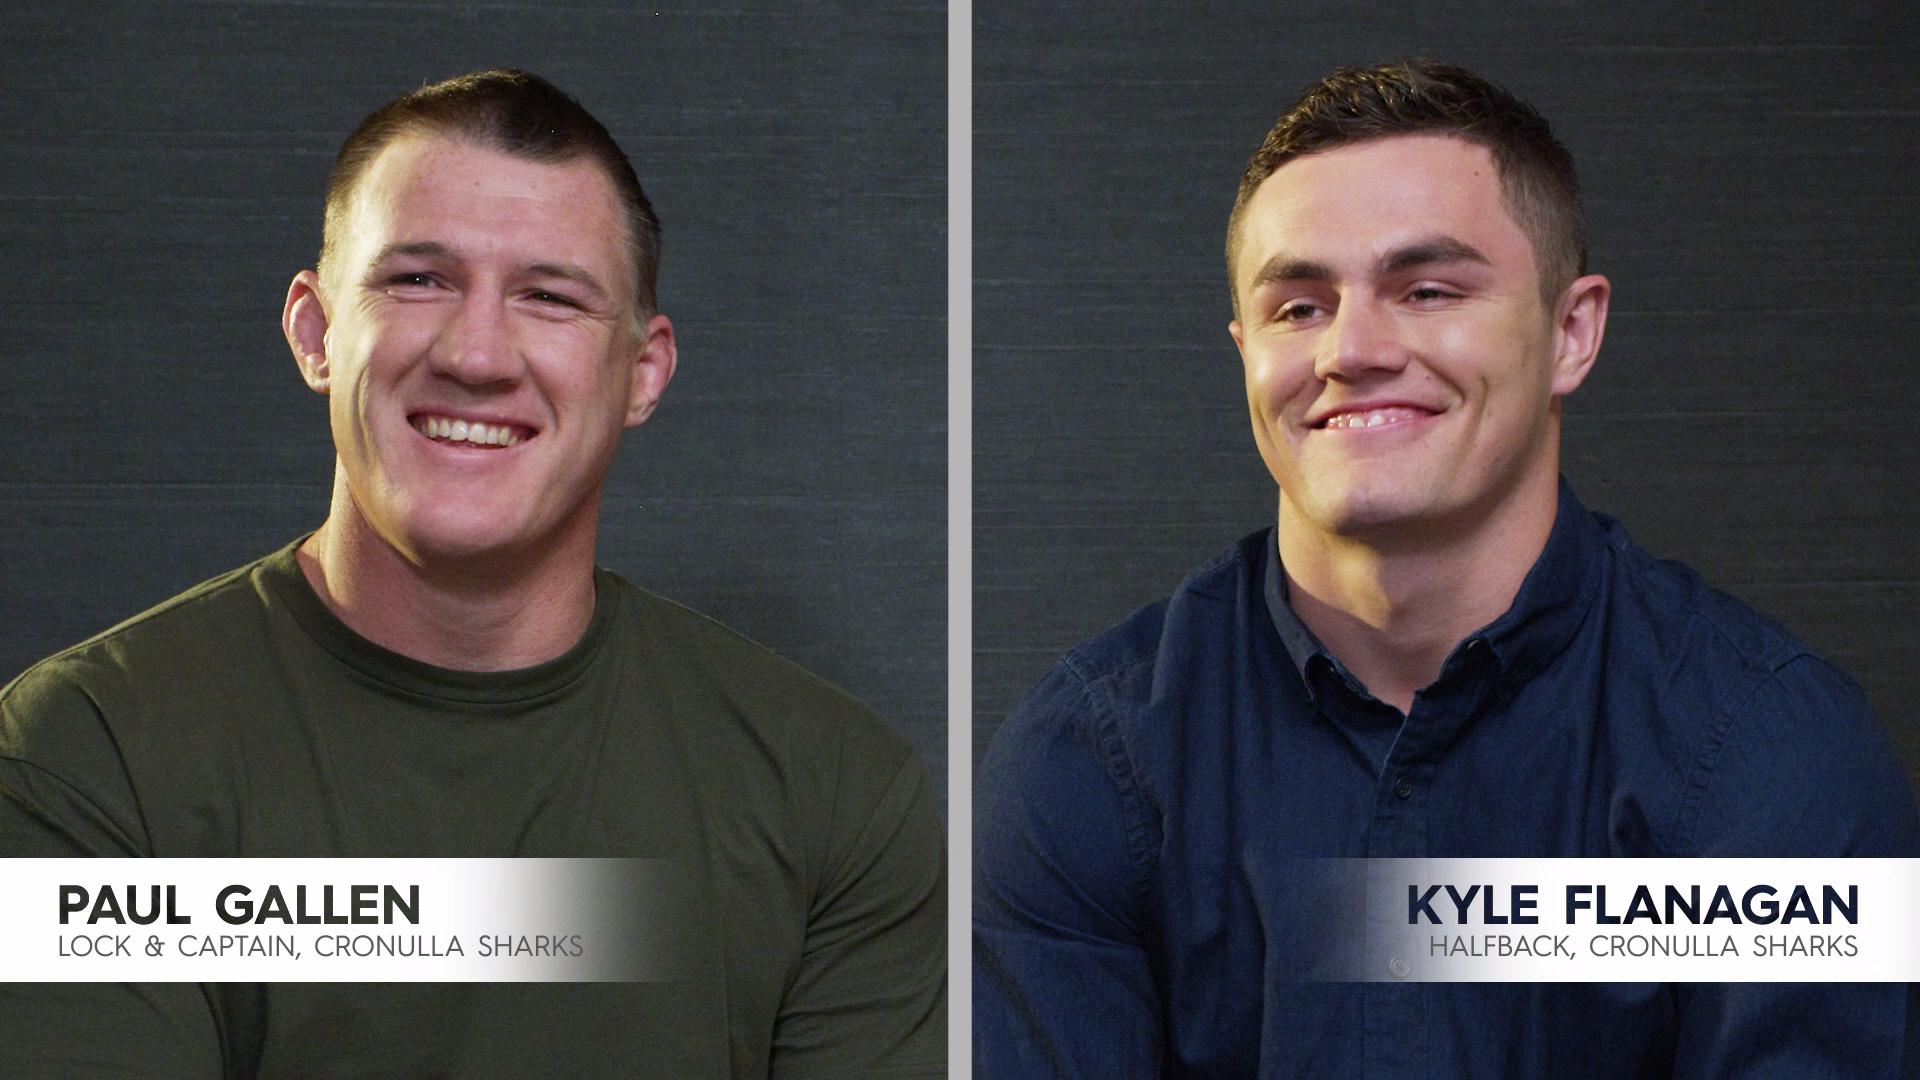 Paul Gallen takes trivia test